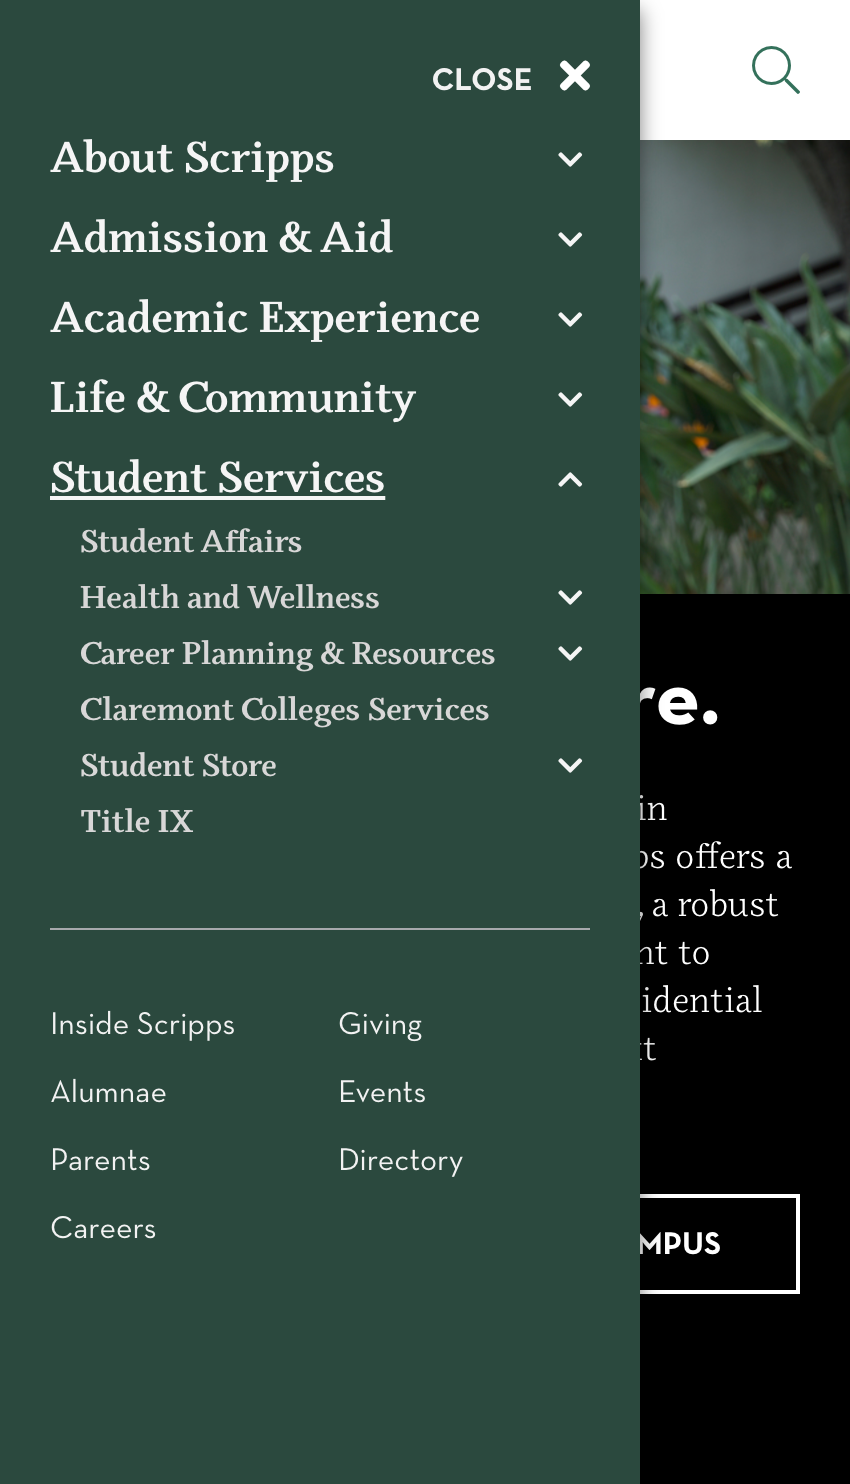 Screenshot of the Scripps College mobile website used to show the inclusion of Student Services in the main menu.